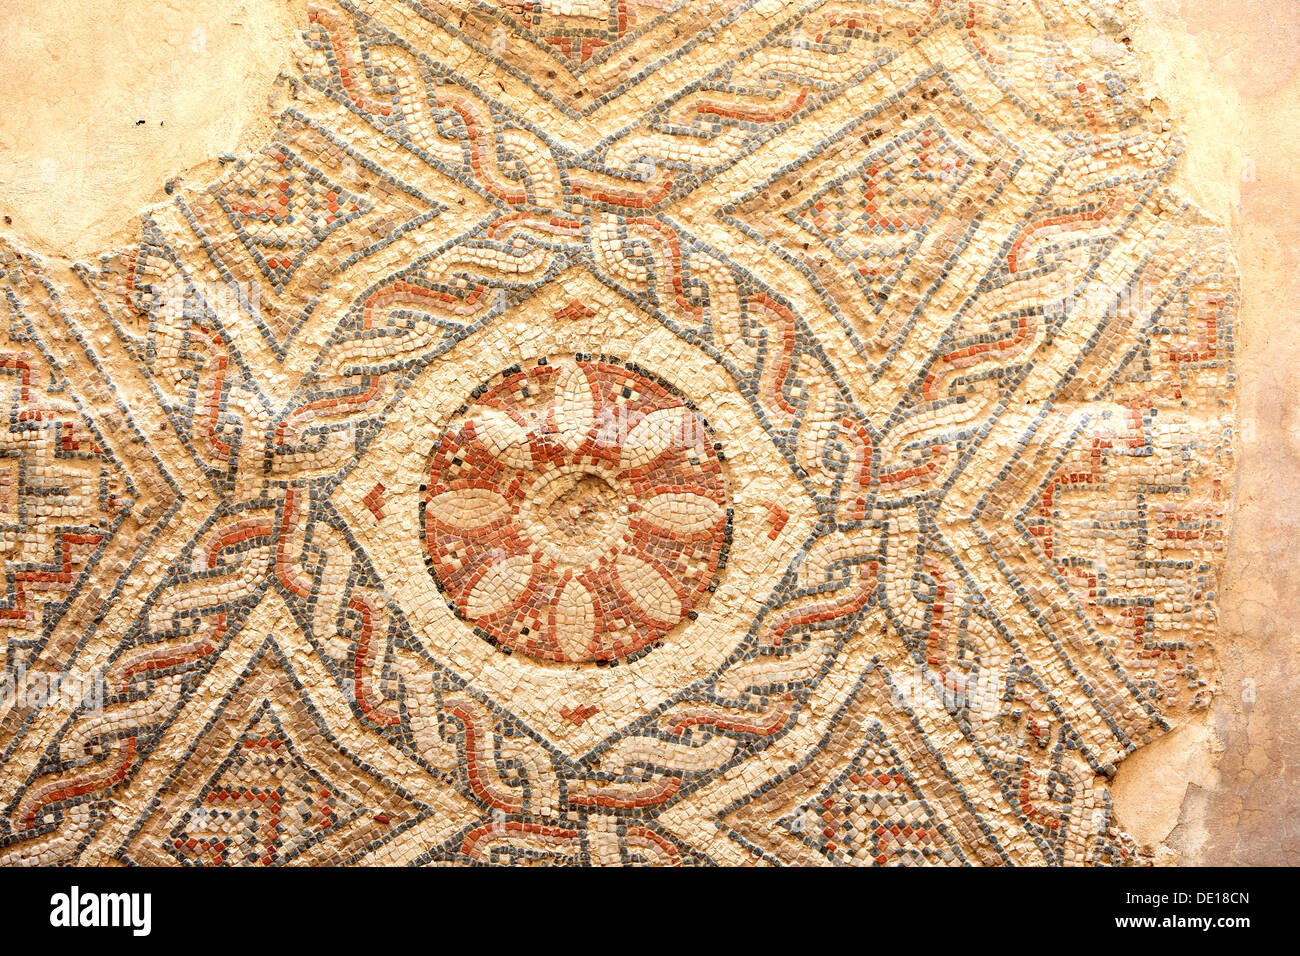 Cyprus, Kourion, Assyrian Ku-ri-i, ancient Greek, Latin, curium, historical, ancient archaeological site, ruins, Mosaic in the H - Stock Image